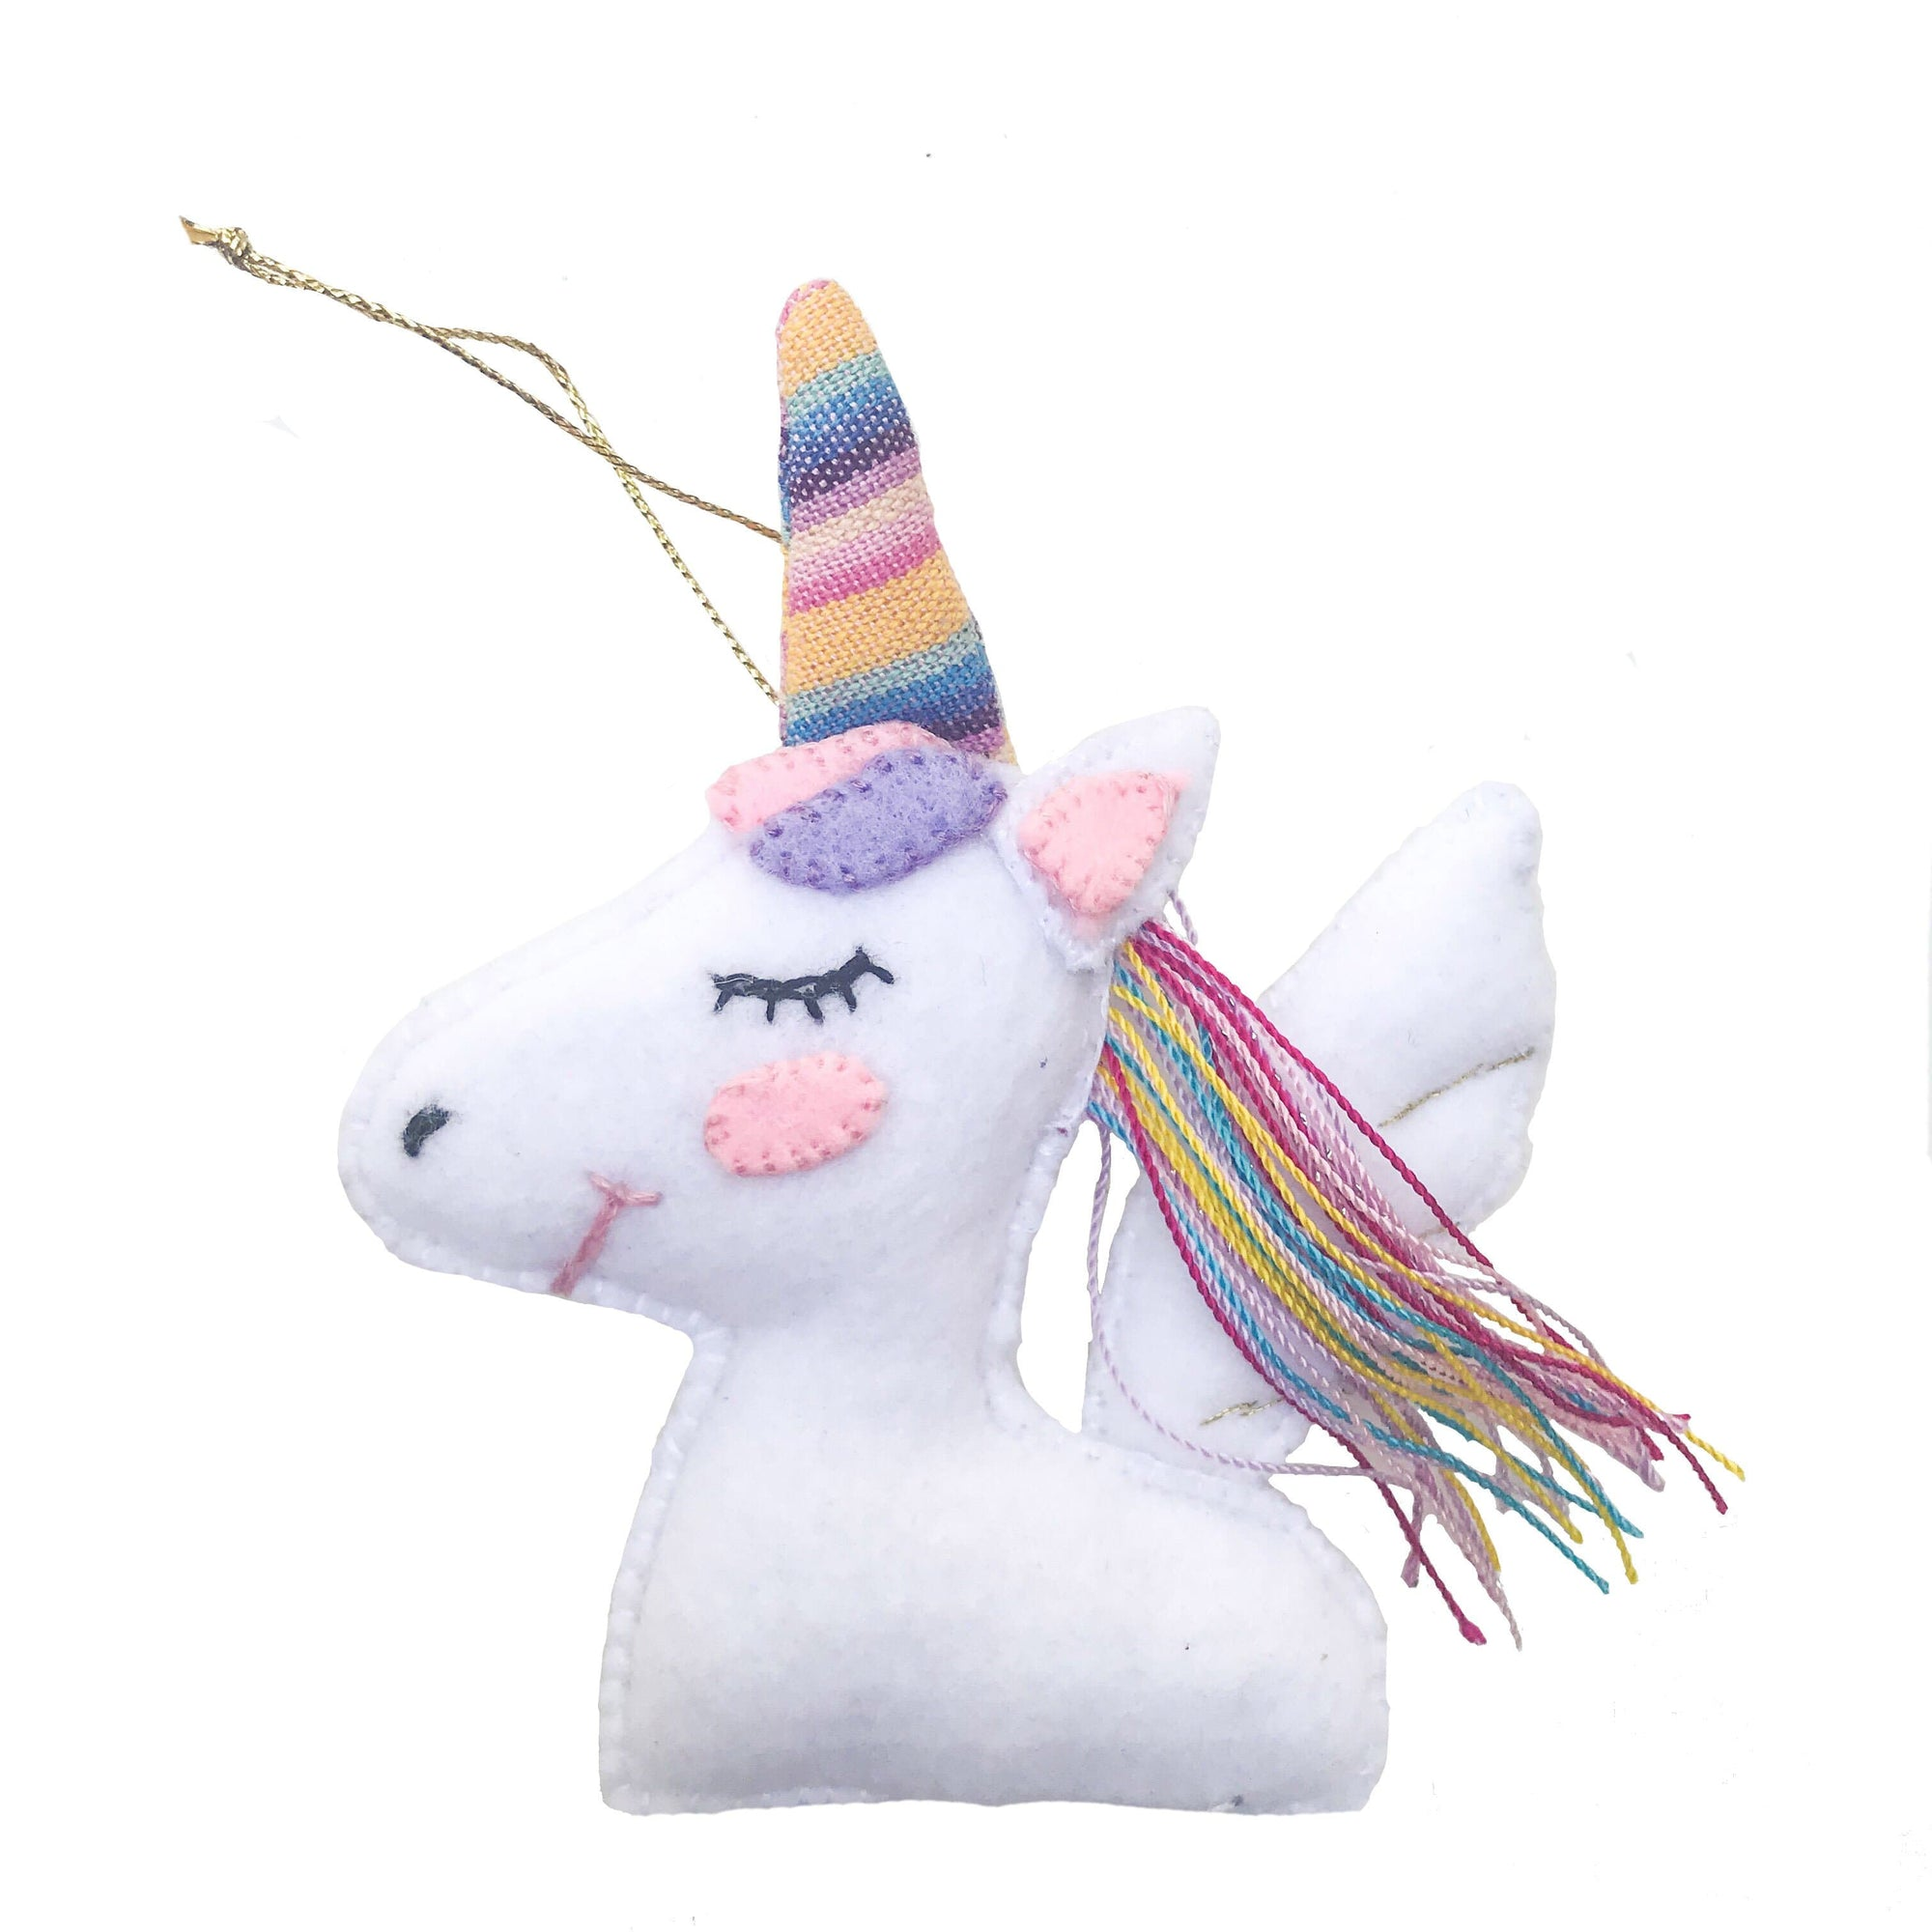 Handmade Felt Unicorn Ornament White